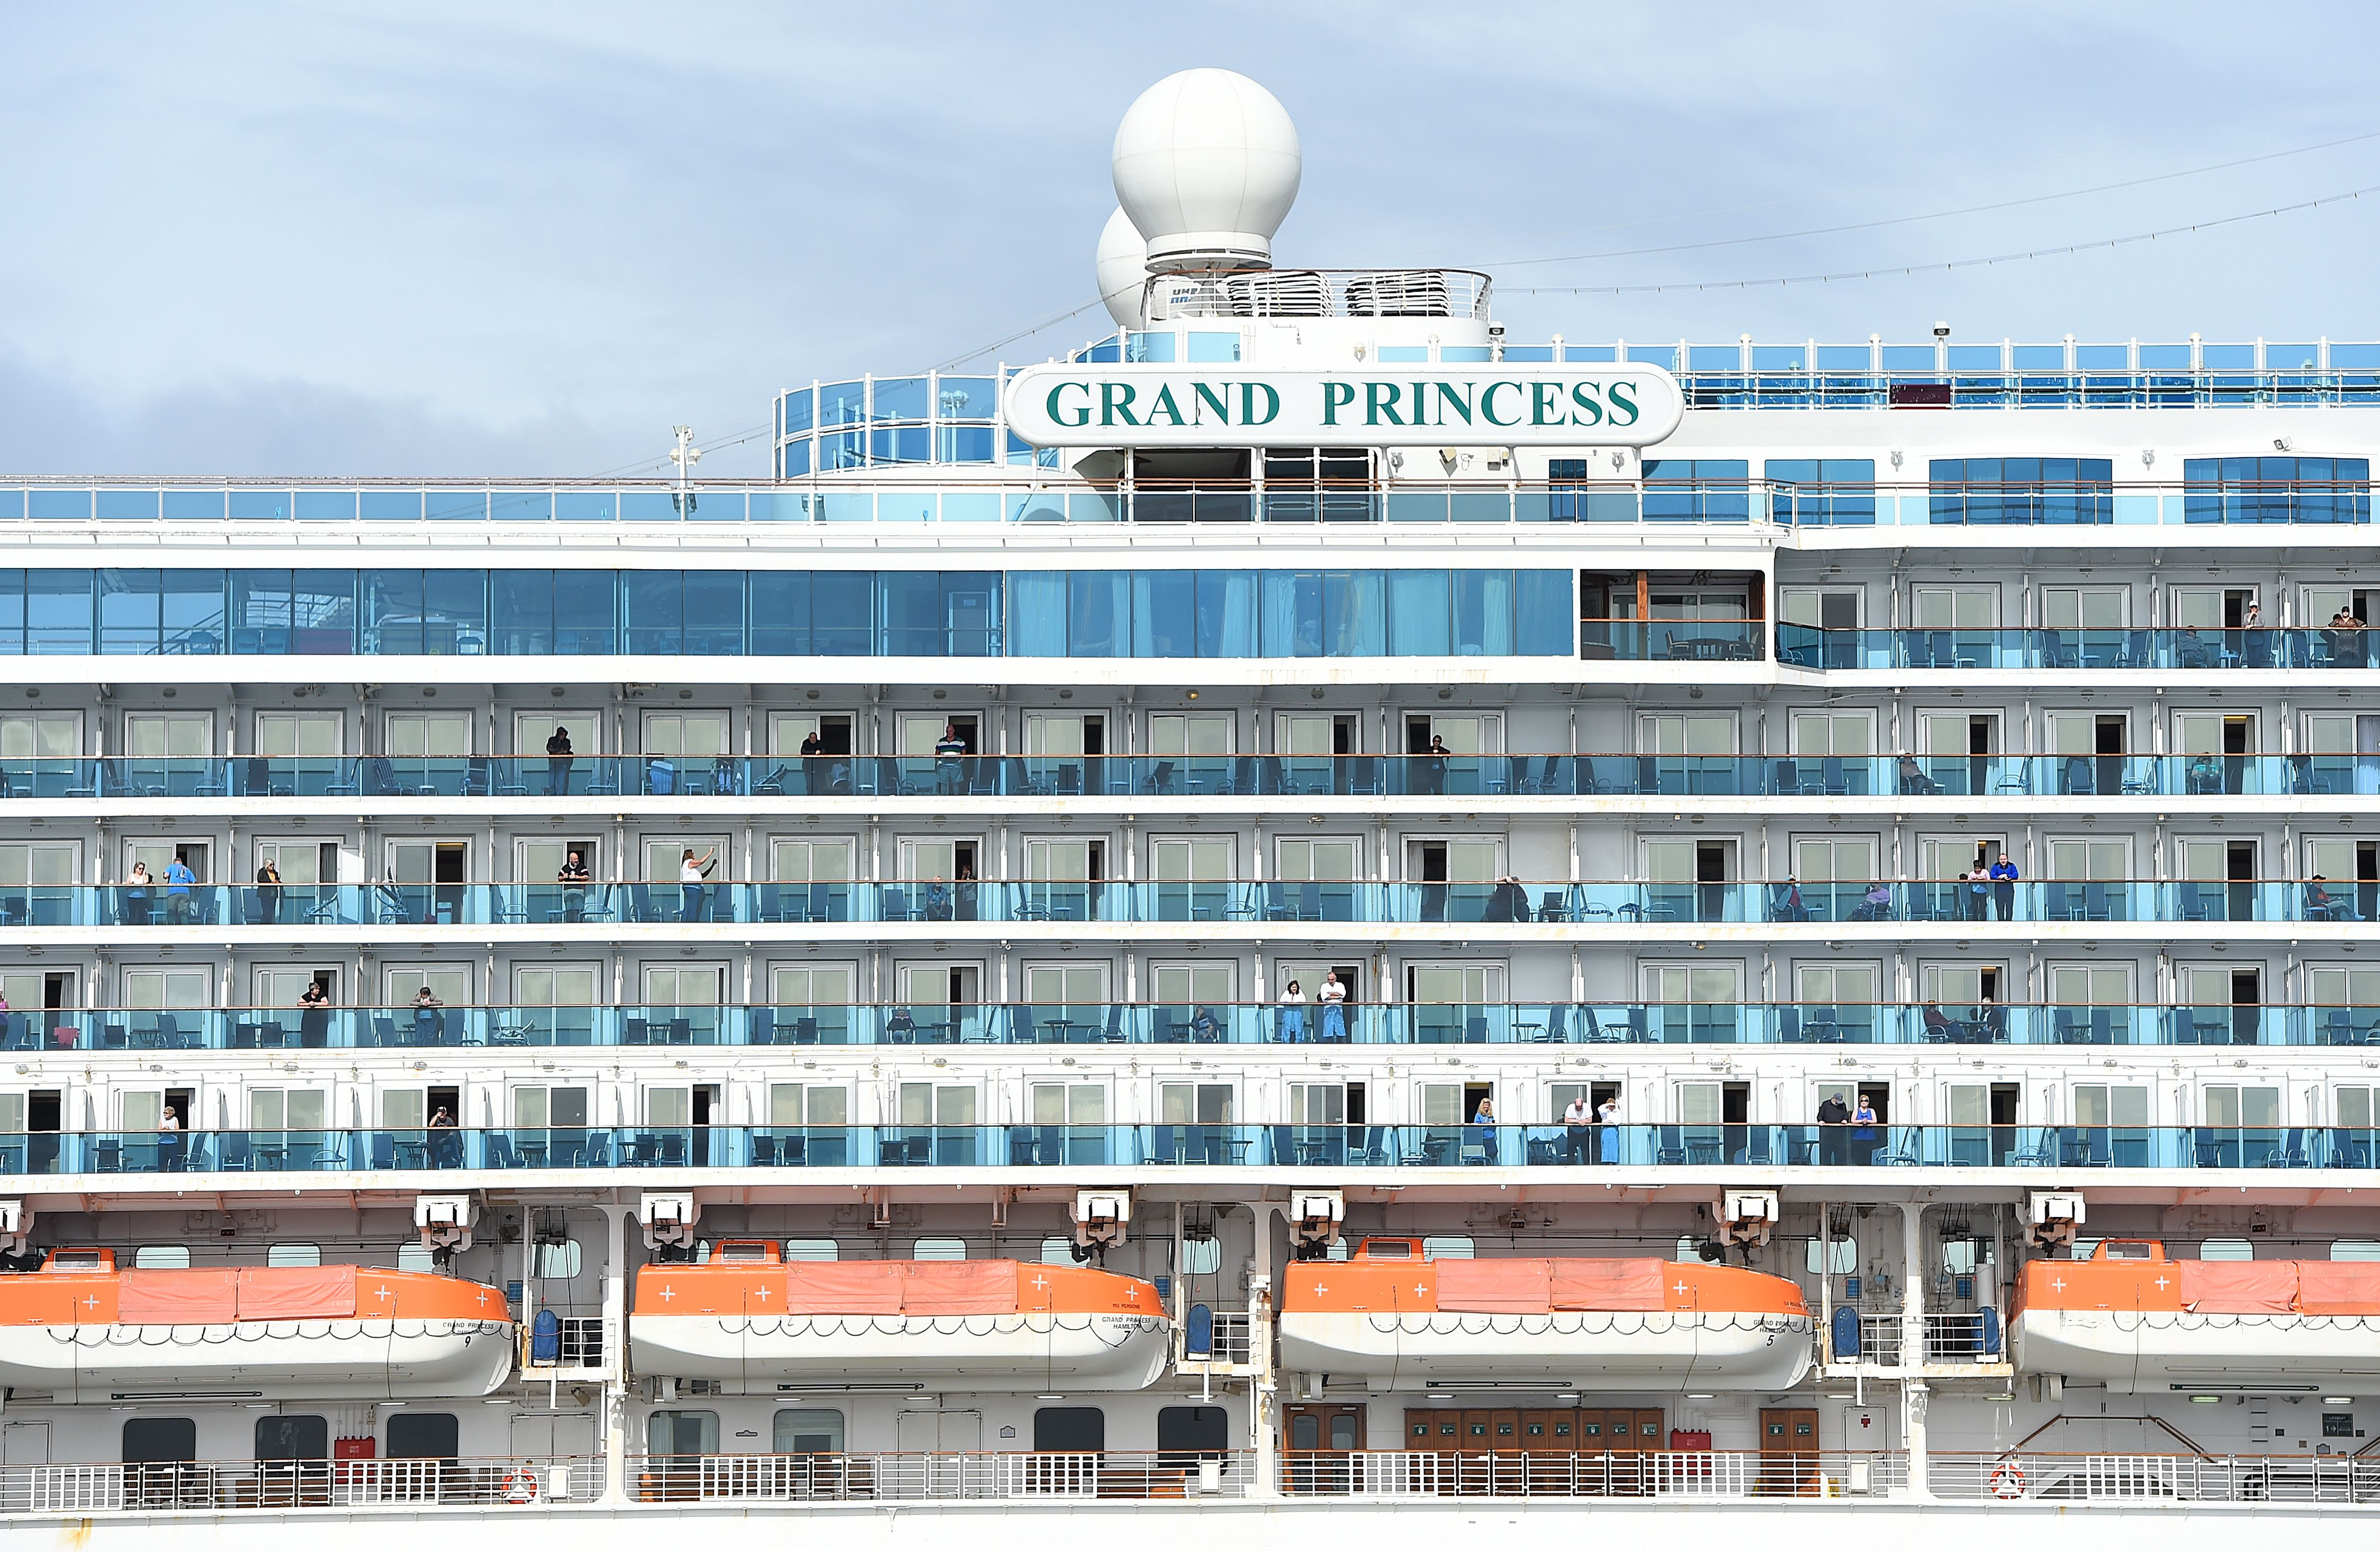 Passengers look out from aboard the Grand Princess cruise ship, operated by Princess Cruises